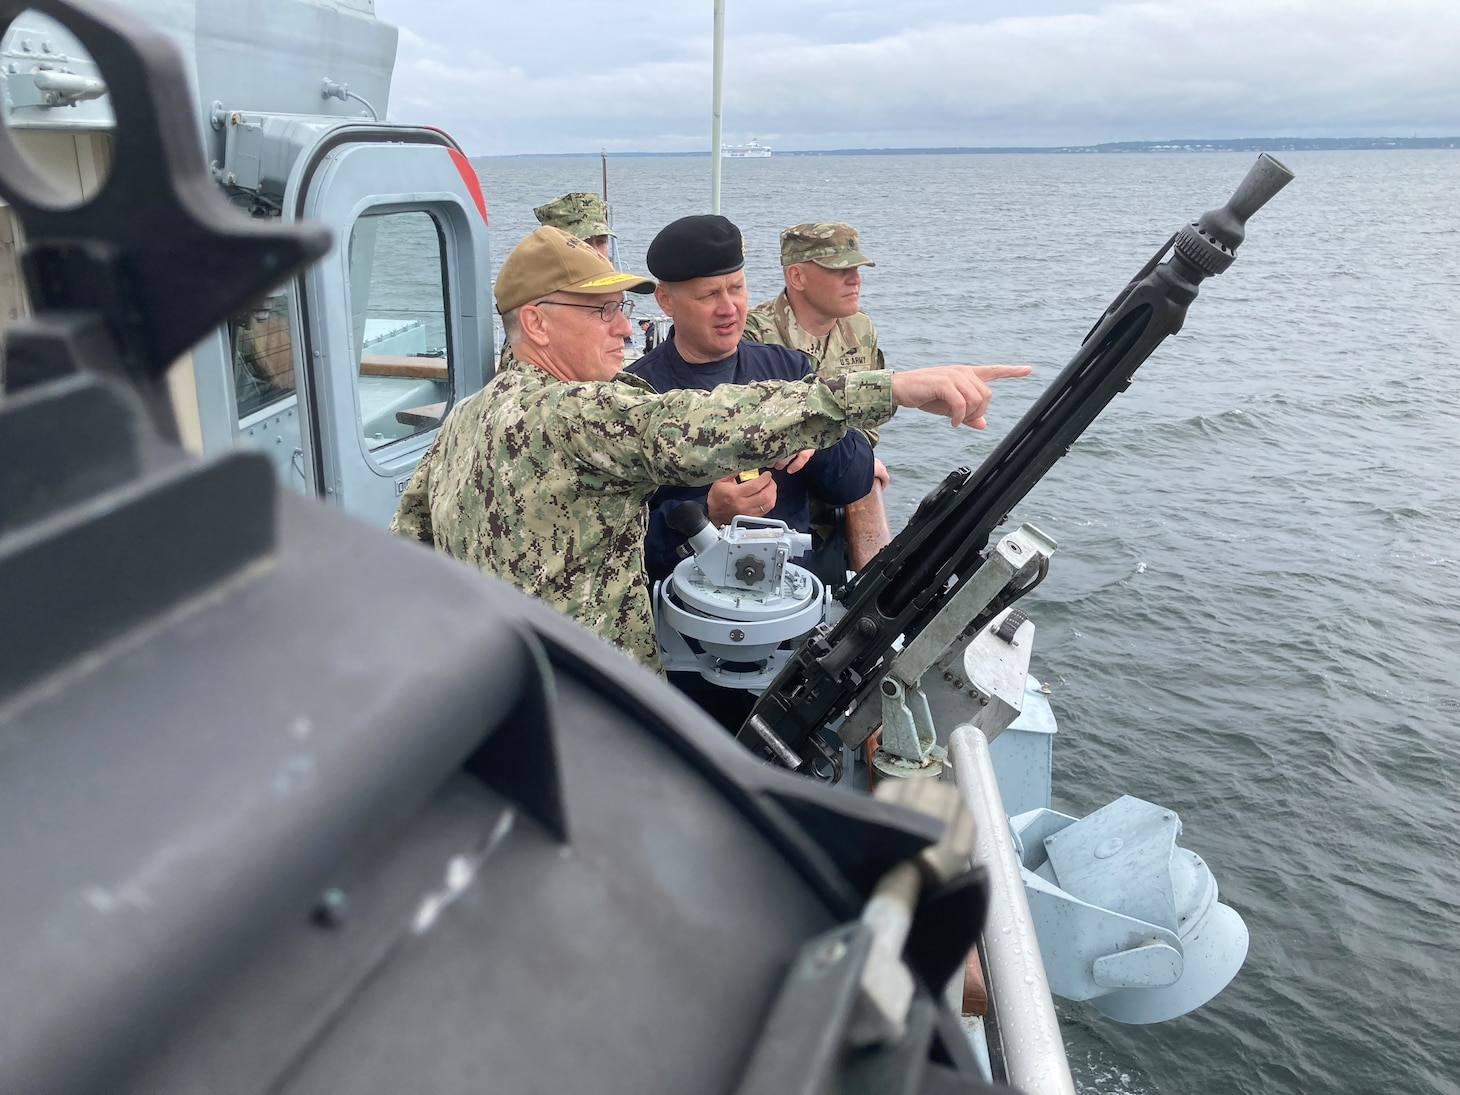 210613-N-NO901-0001 BALTIC SEA (June 13, 2021) Estonian head of Navy Commodore Jüri Saska, middle, and Vice Adm. Gene Black, commander, U.S. Sixth Fleet and commander, Naval Striking and Support Forces NATO, observe a historic mine disposal aboard Estonian minehunter EML Admiral Cowen (M 313), June 13, 2021, in the Baltic Sea. The 50th BALTOPS represents a continuous, steady commitment to reinforcing interoperability in the Alliance and providing collective maritime security in the Baltic Sea. (U.S. Navy courtesy photo)